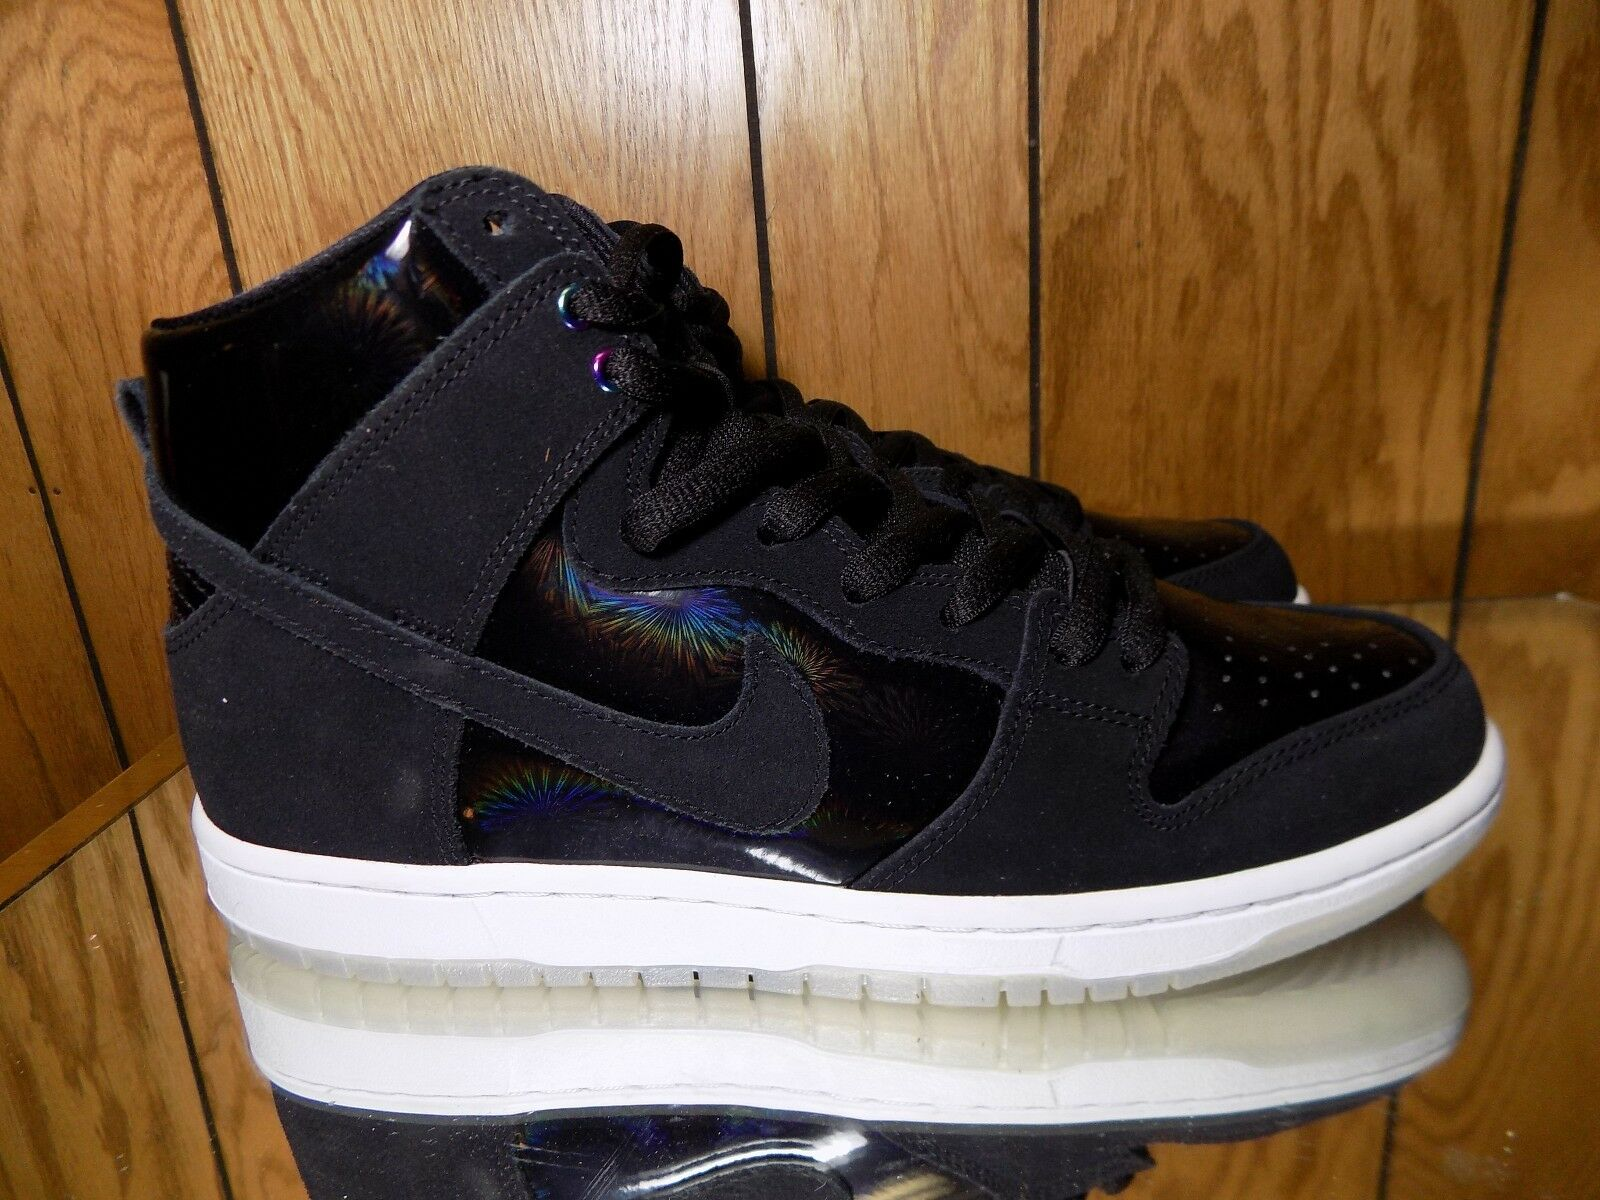 Seasonal clearance sale NIKE SB ZOOM DUNK HIGH PRO 854851-001 IRIDESCENT BLACK WHITE CLEAR DS Price reduction